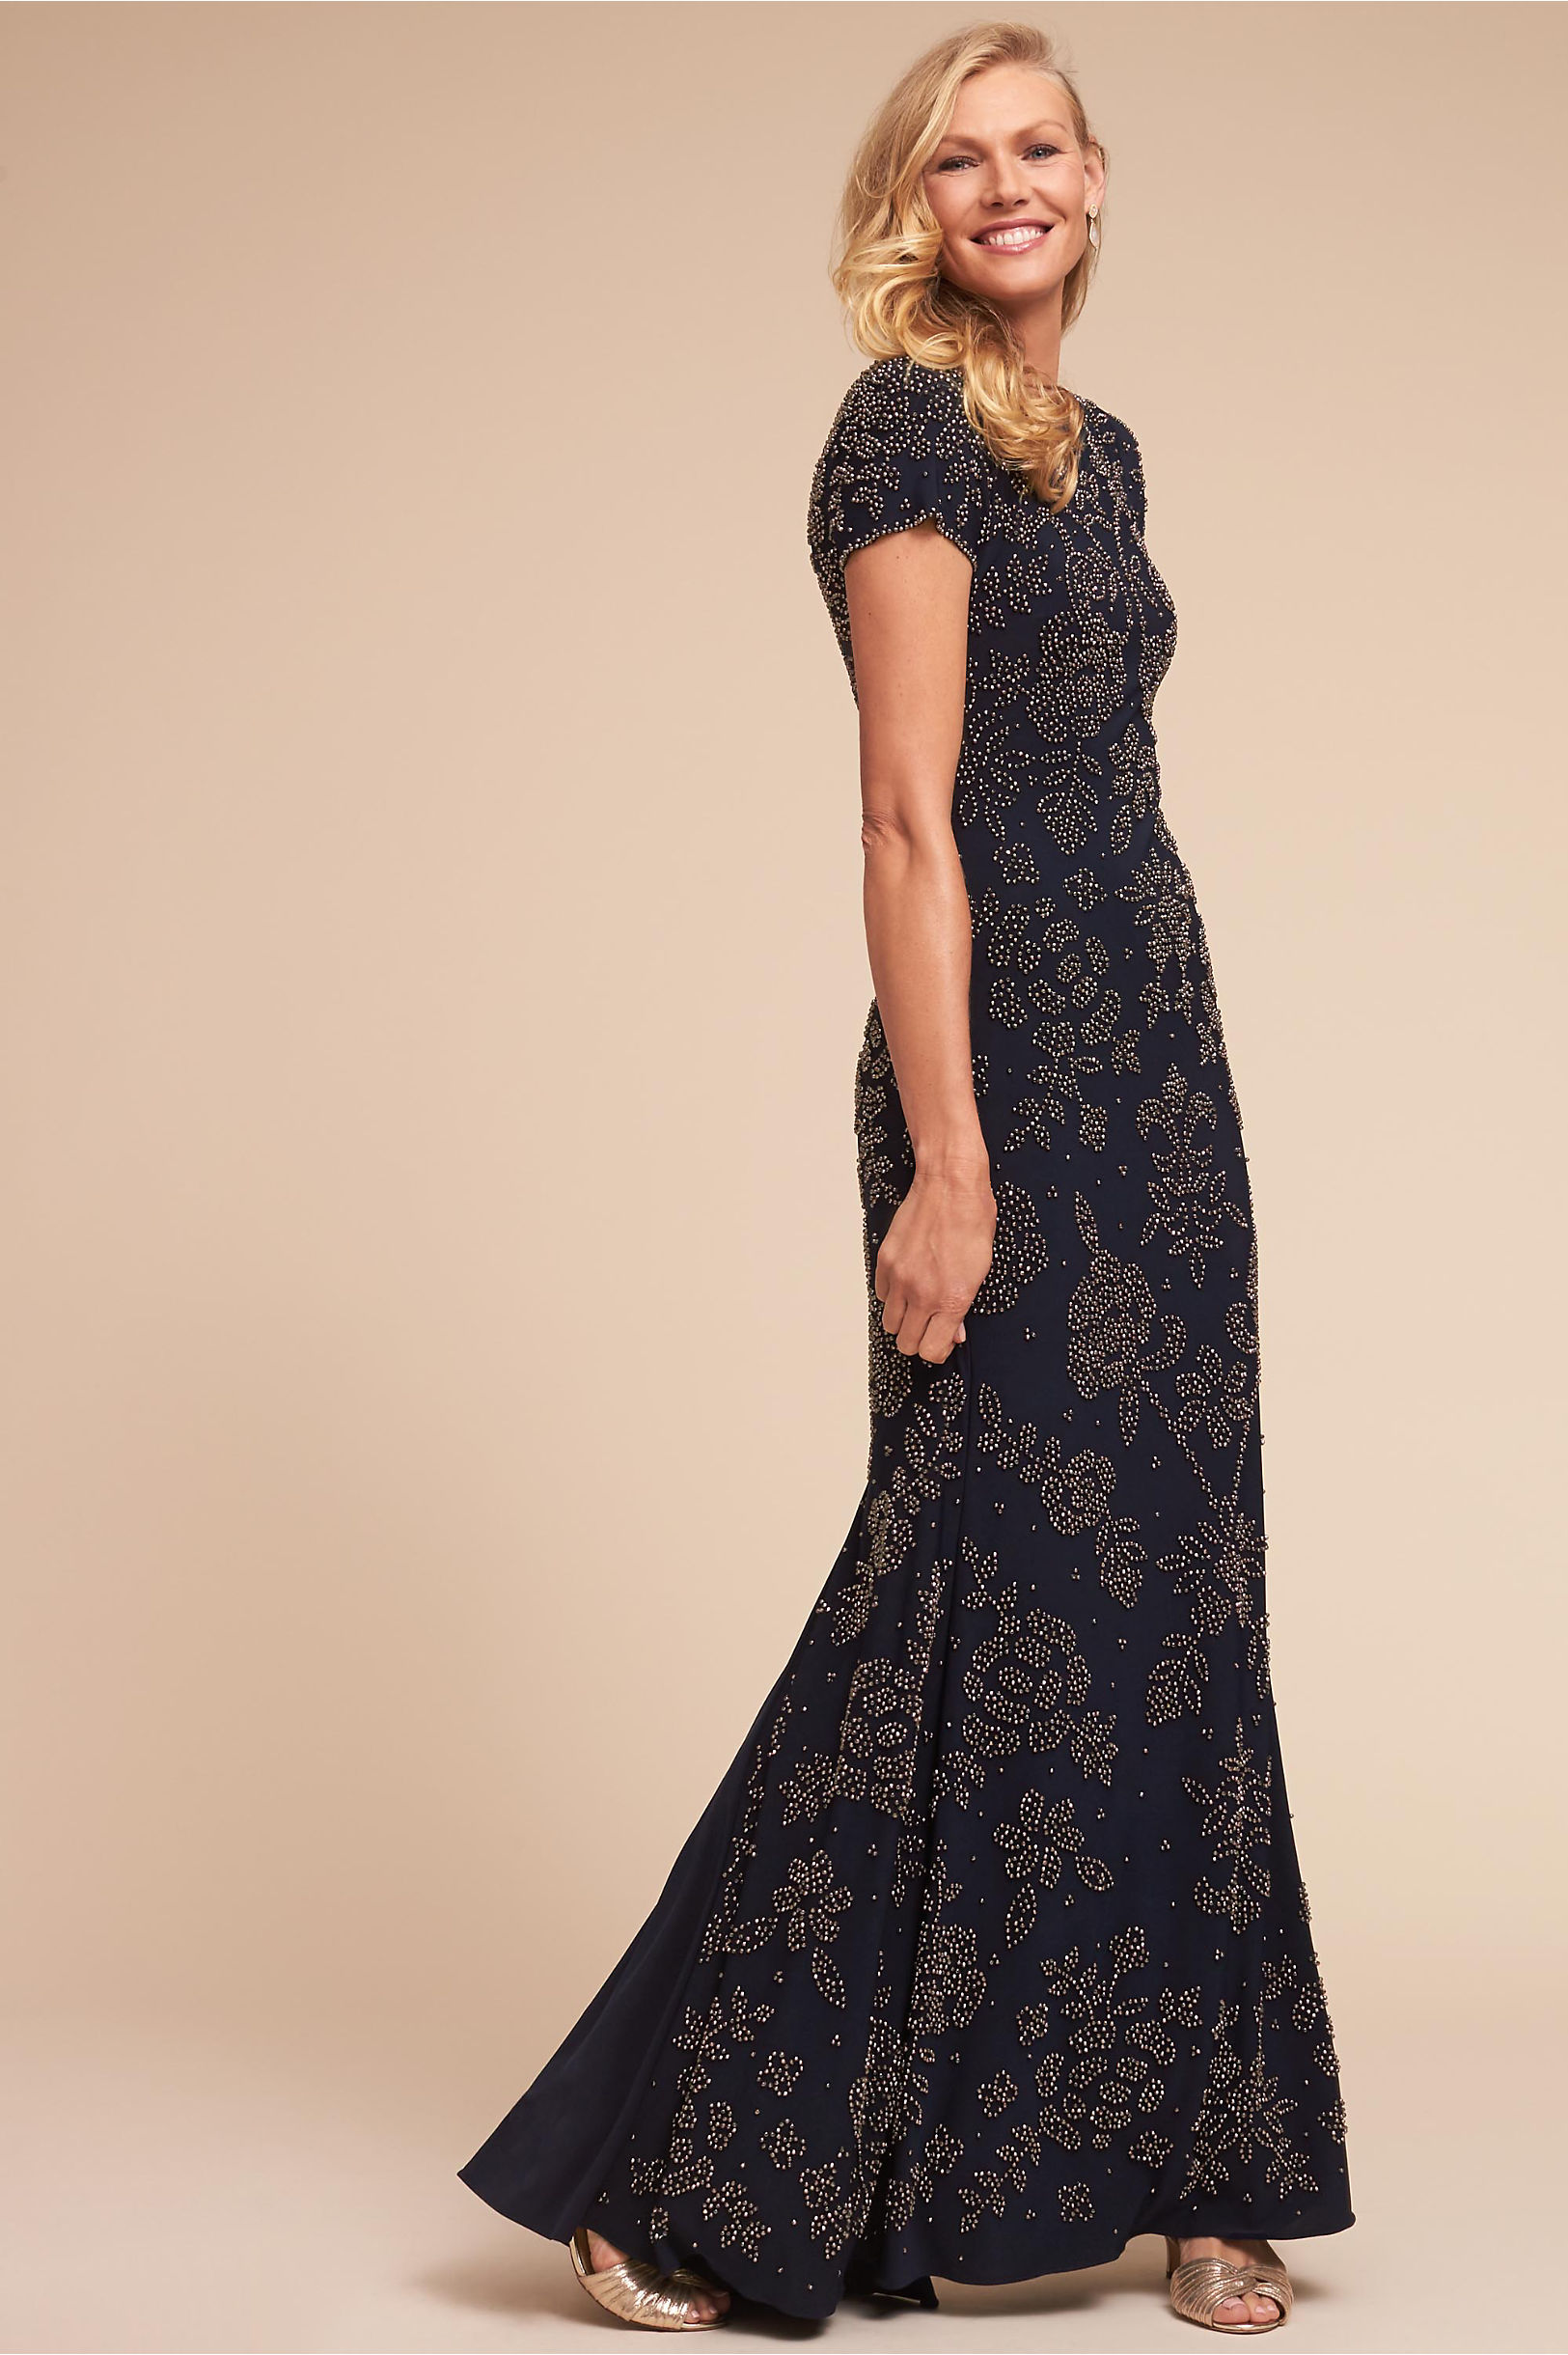 Andes Dress in Sale | BHLDN